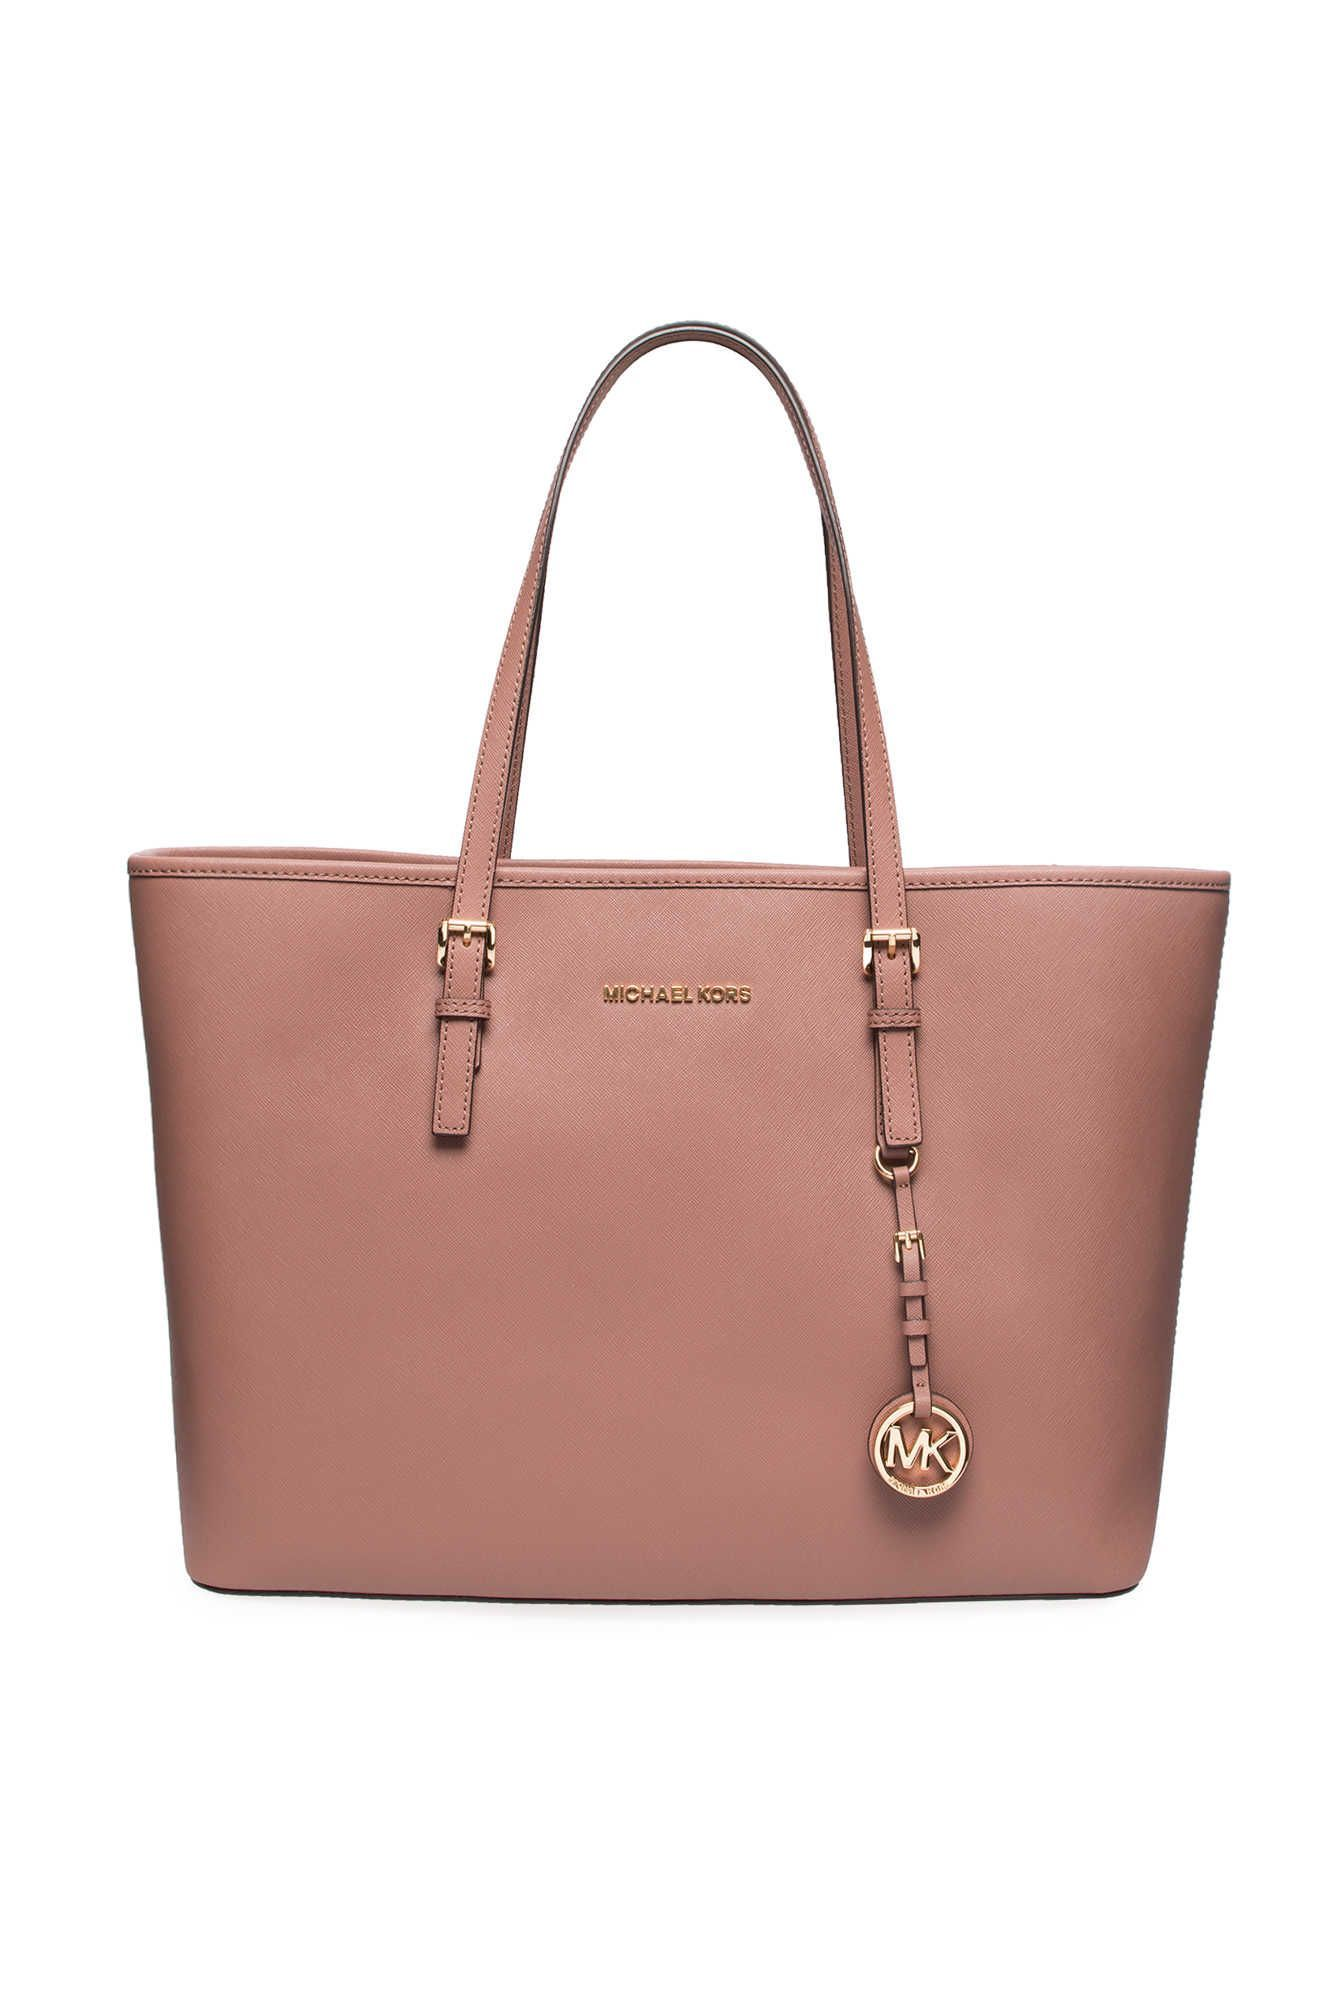 5a14042a90bb Väska Jet Set Travel MD Mult Funt Tote DUSTY ROSE/GOLD - Michael - Michael  Kors - Designers - Raglady